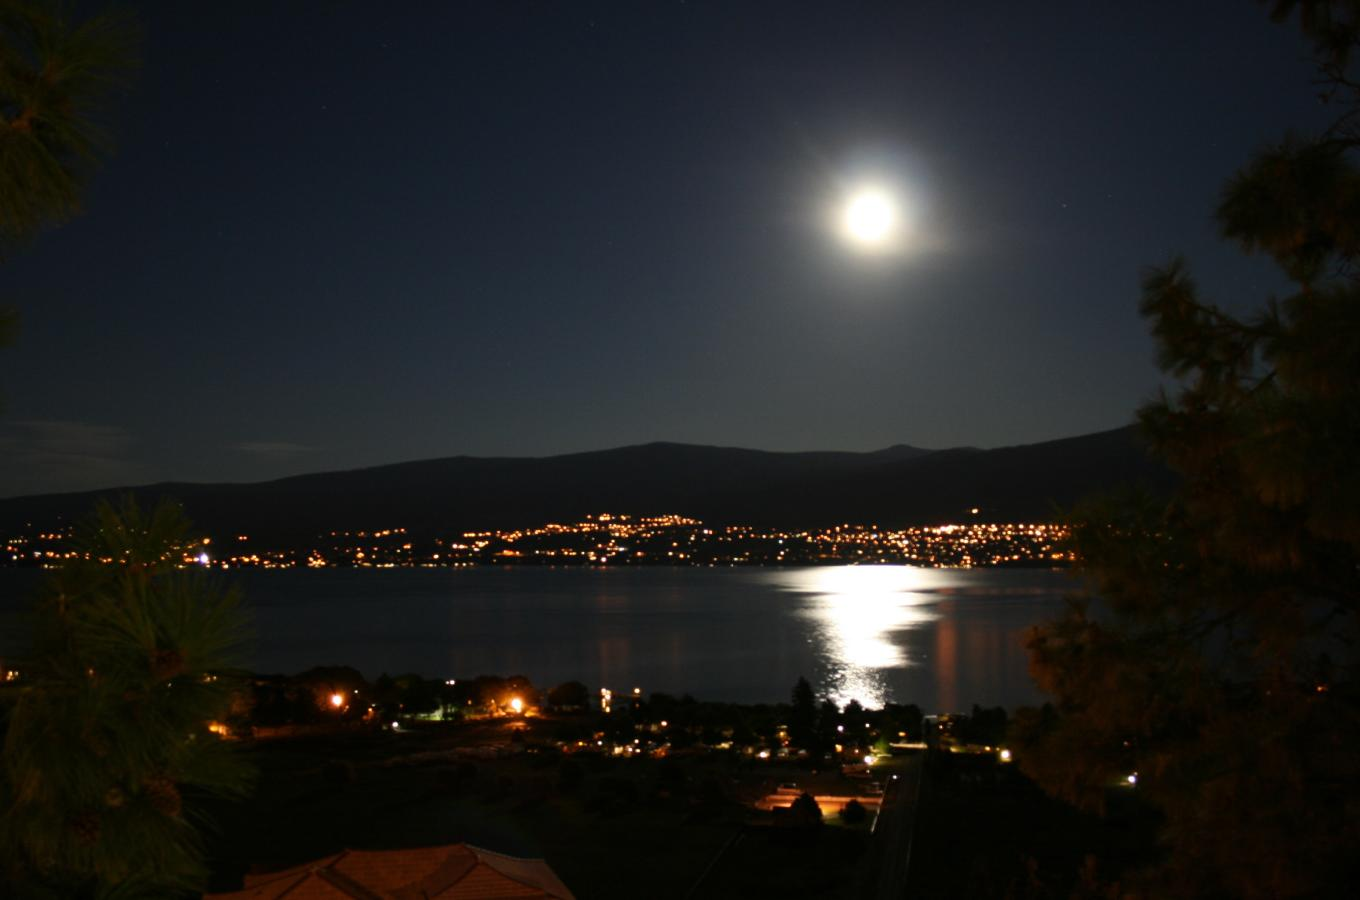 How romantic - watch the full moom shimmering over Lake Okanagan from your deck.